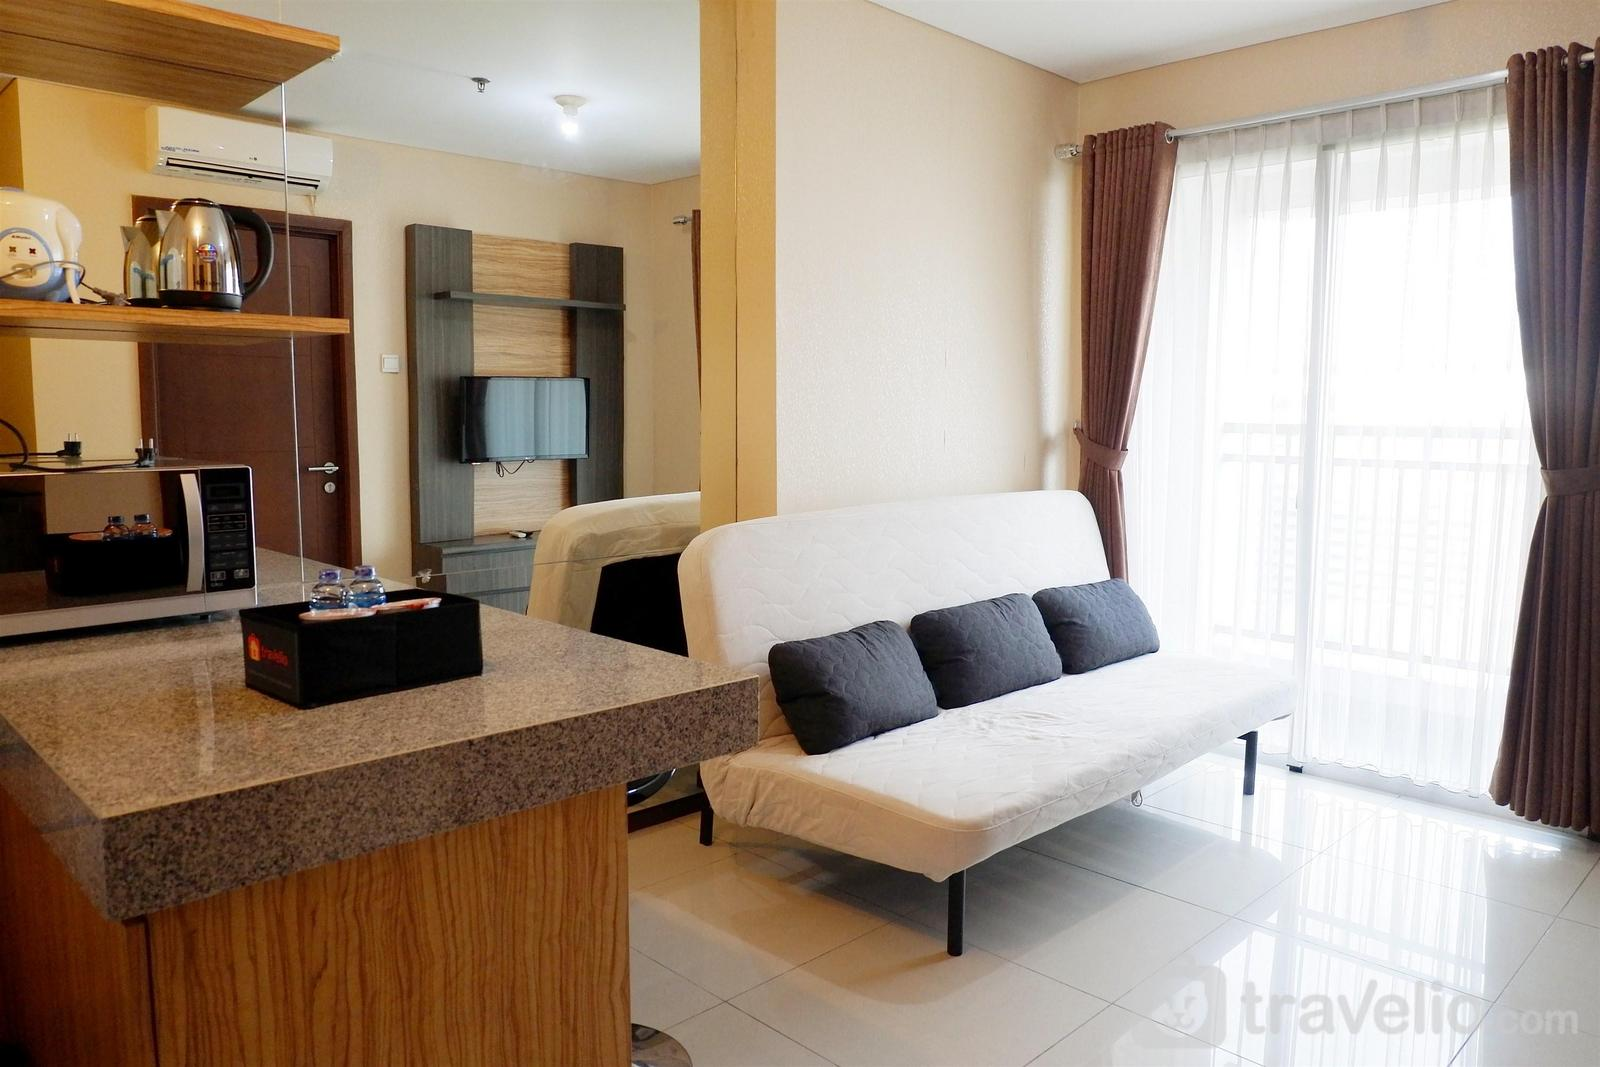 Thamrin Executive - 1BR with Sofa Bed Thamrin Executive Apartment By Travelio